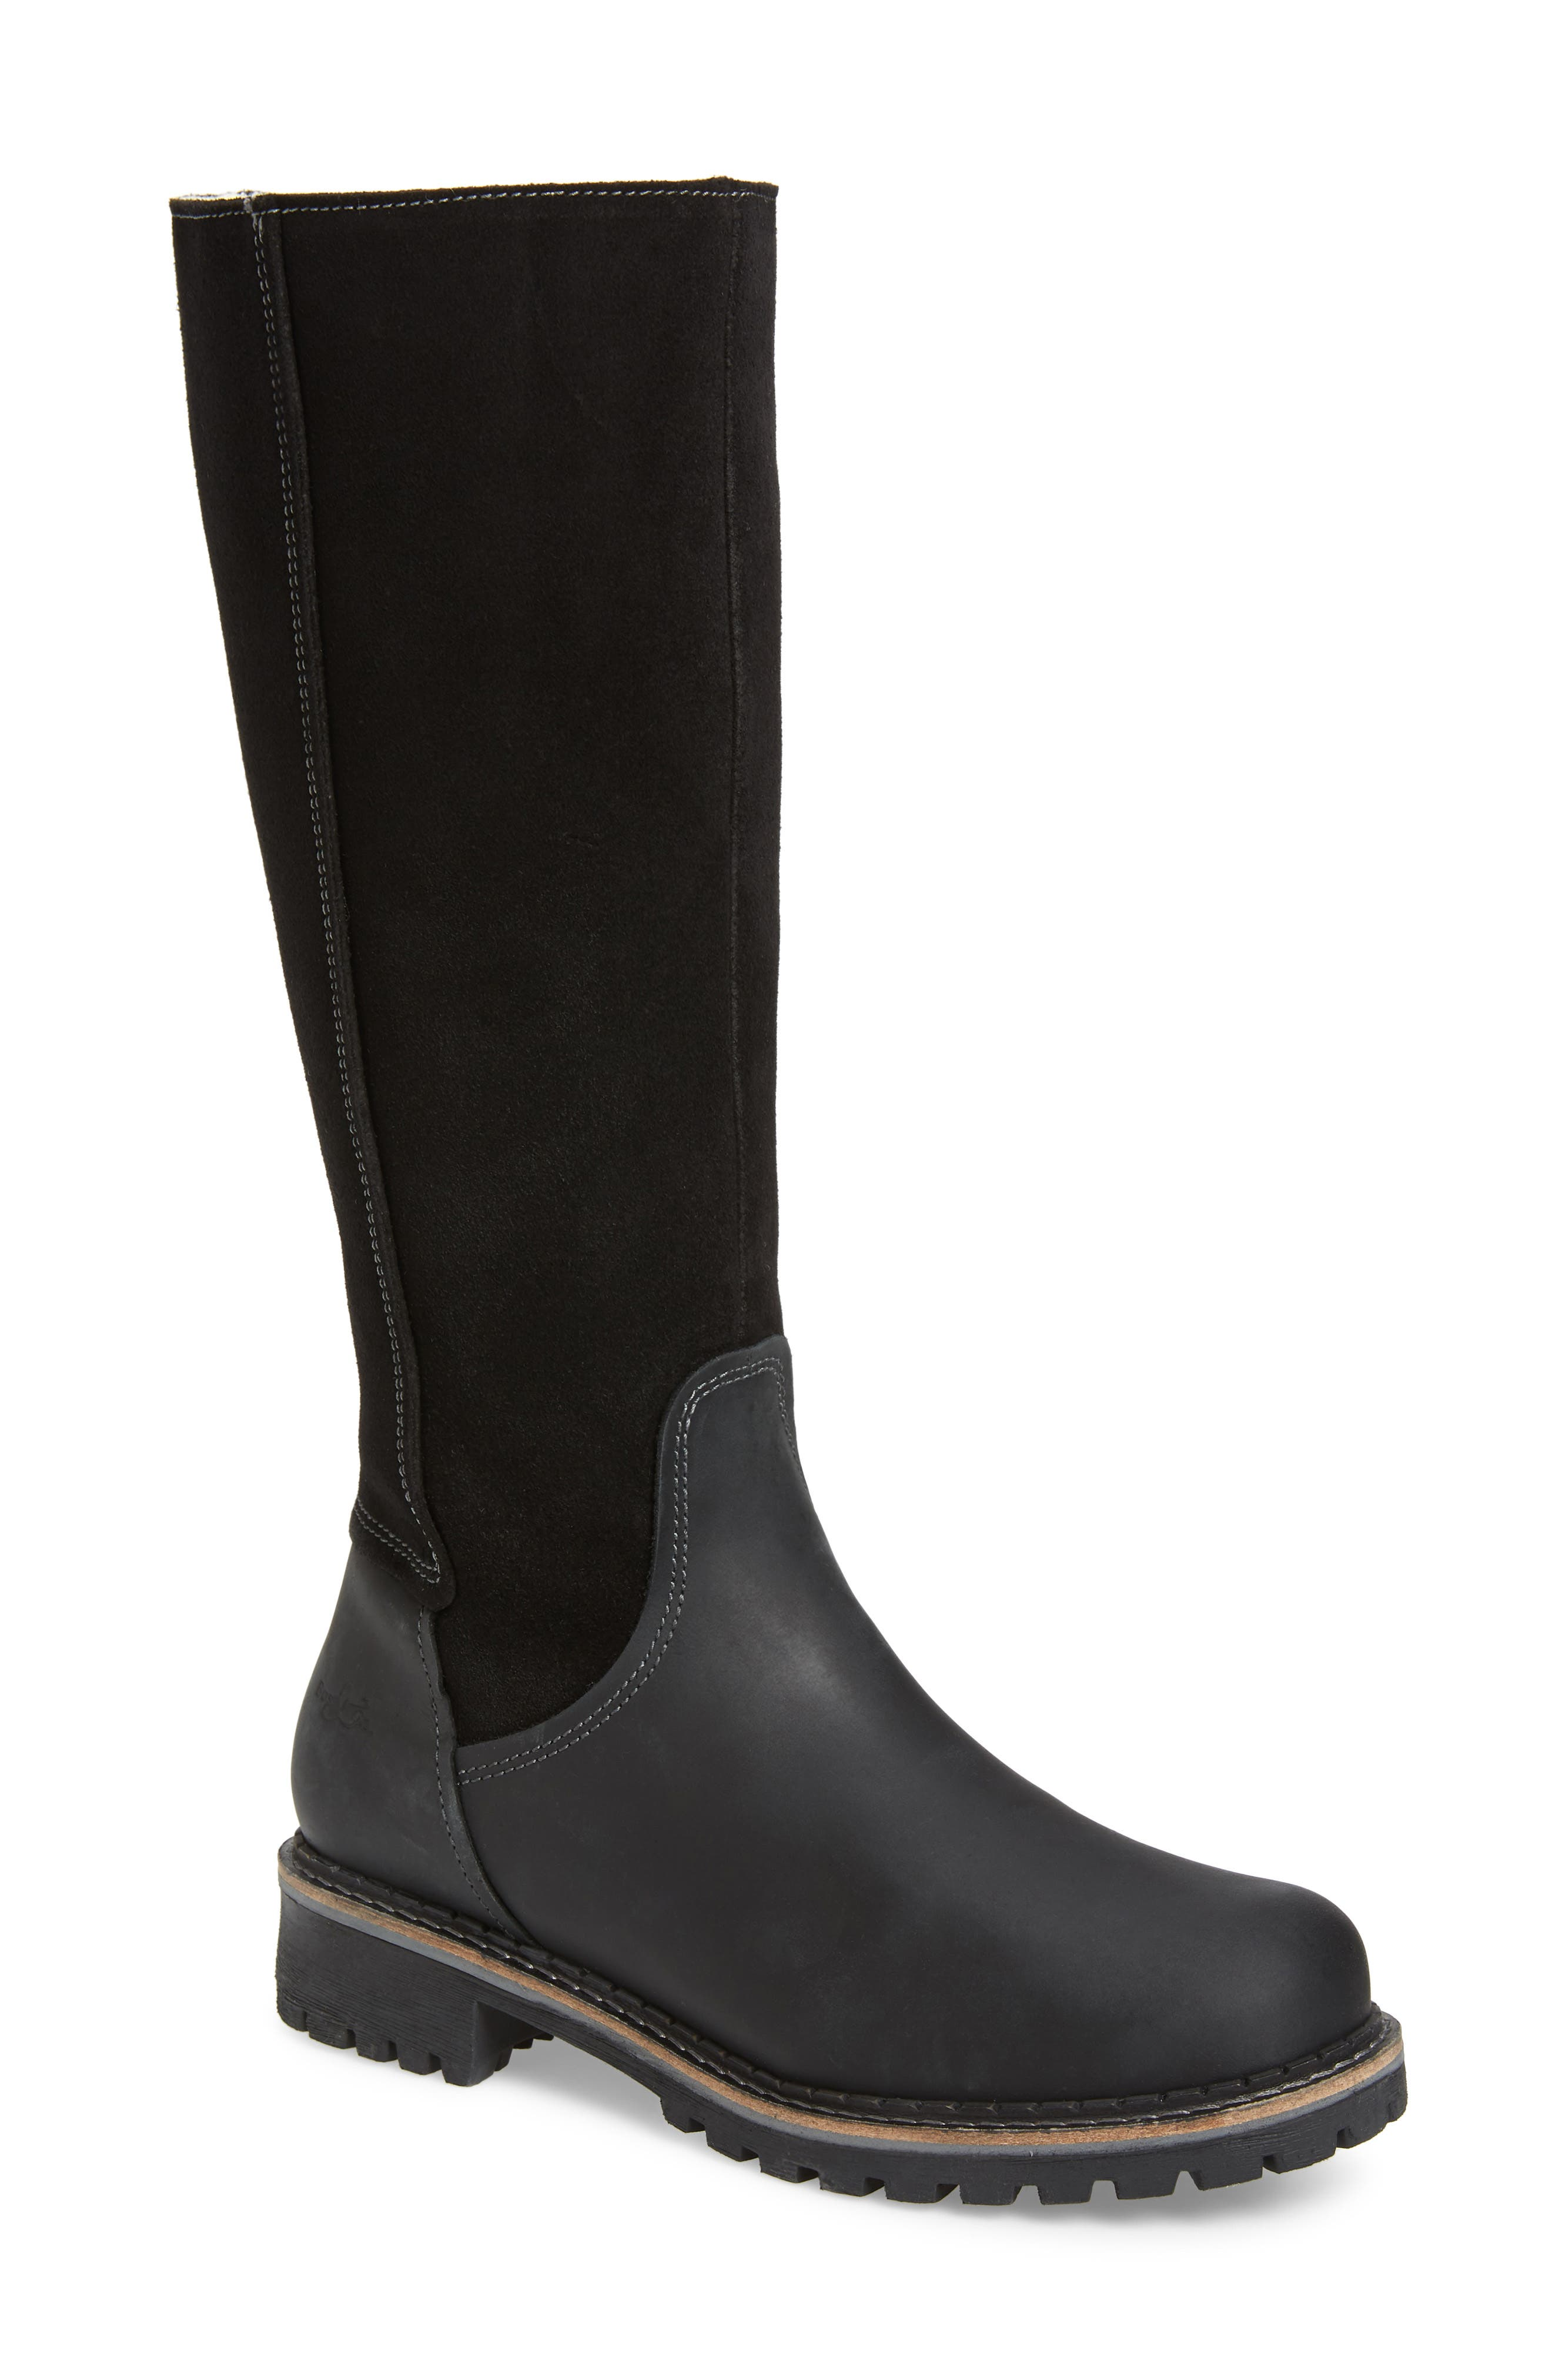 6fc3587c75a black suede knee high boots | Nordstrom